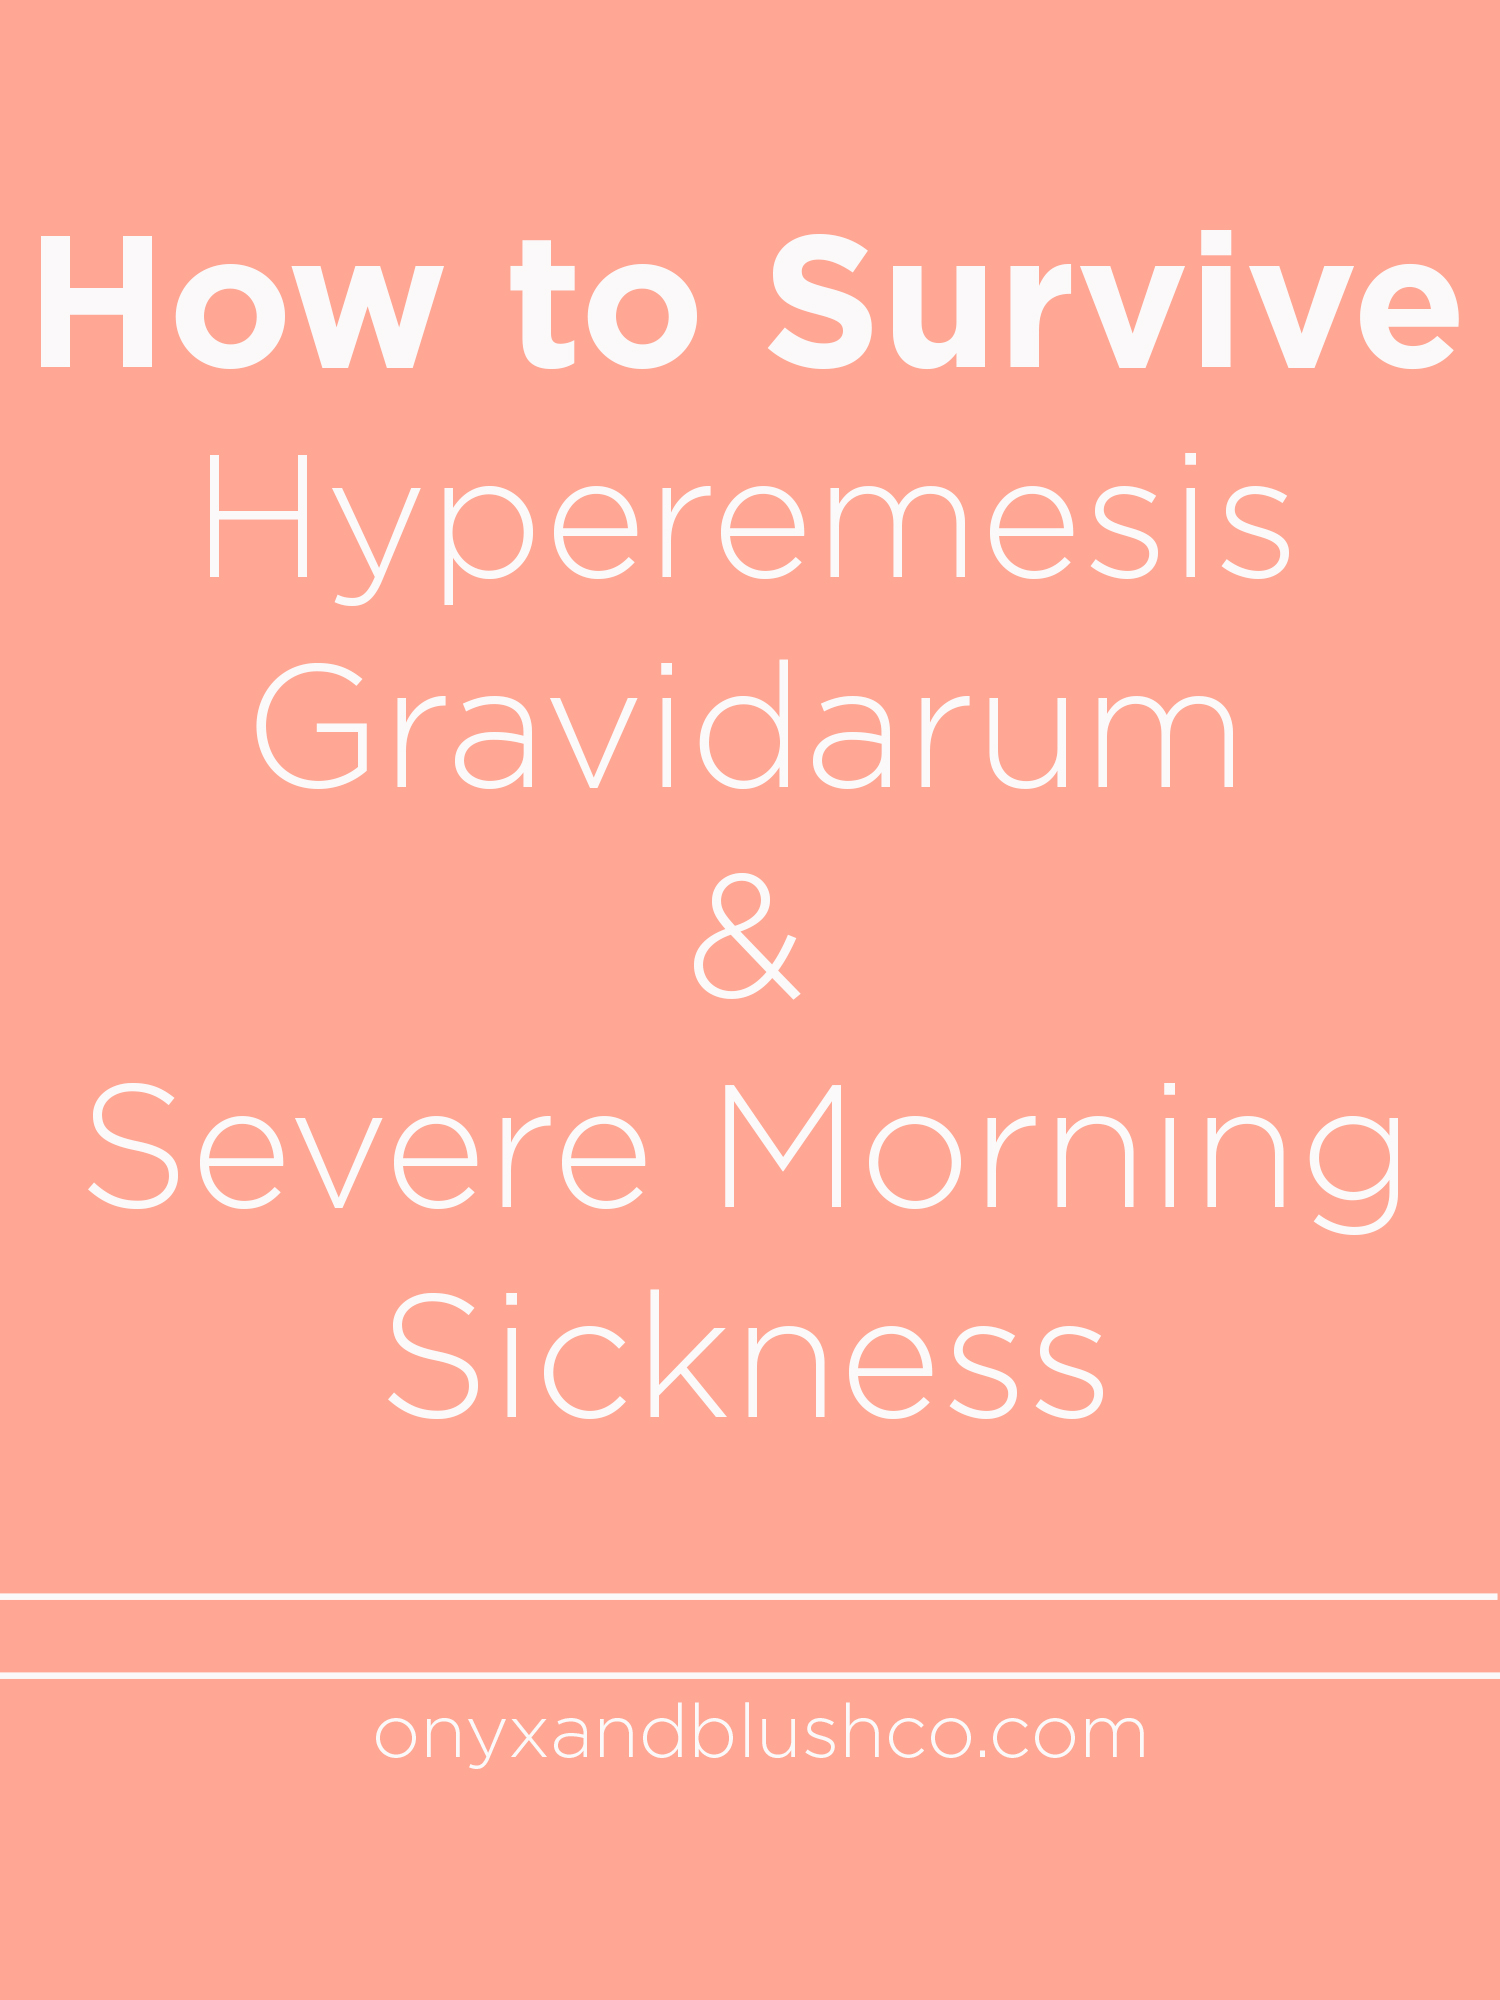 How to Survive Hyperemesis and Severe Morning Sickness Tips